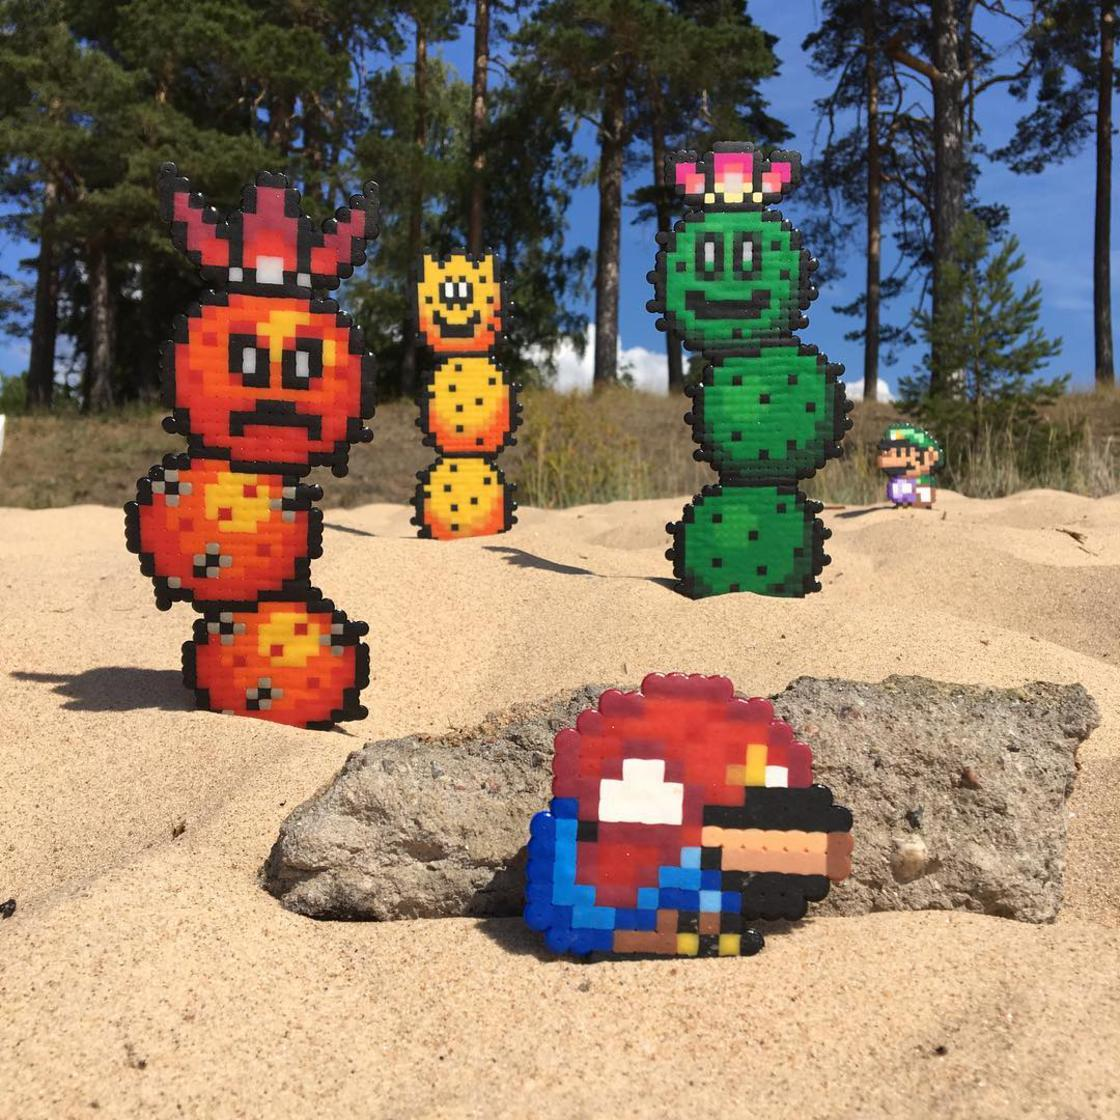 Between Street Art and Pixel Art, the amazing creations of Pappas Parlor